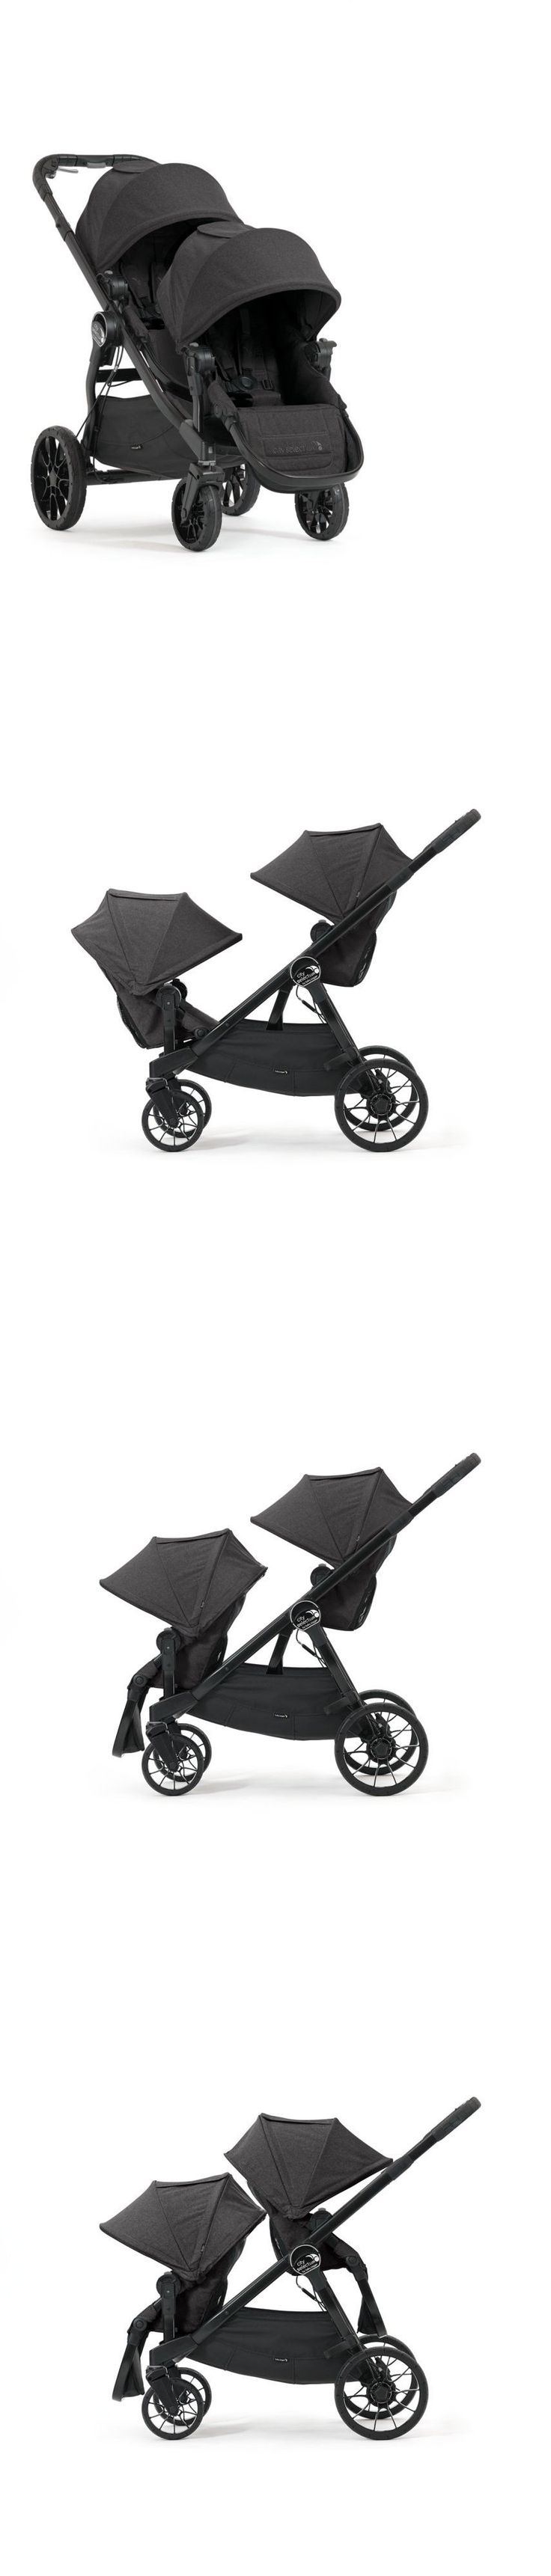 Strollers 66700: Baby Jogger City Select Lux Stroller Into Double Stroller Large Storage Basket -> BUY IT NOW ONLY: $246.57 on eBay!